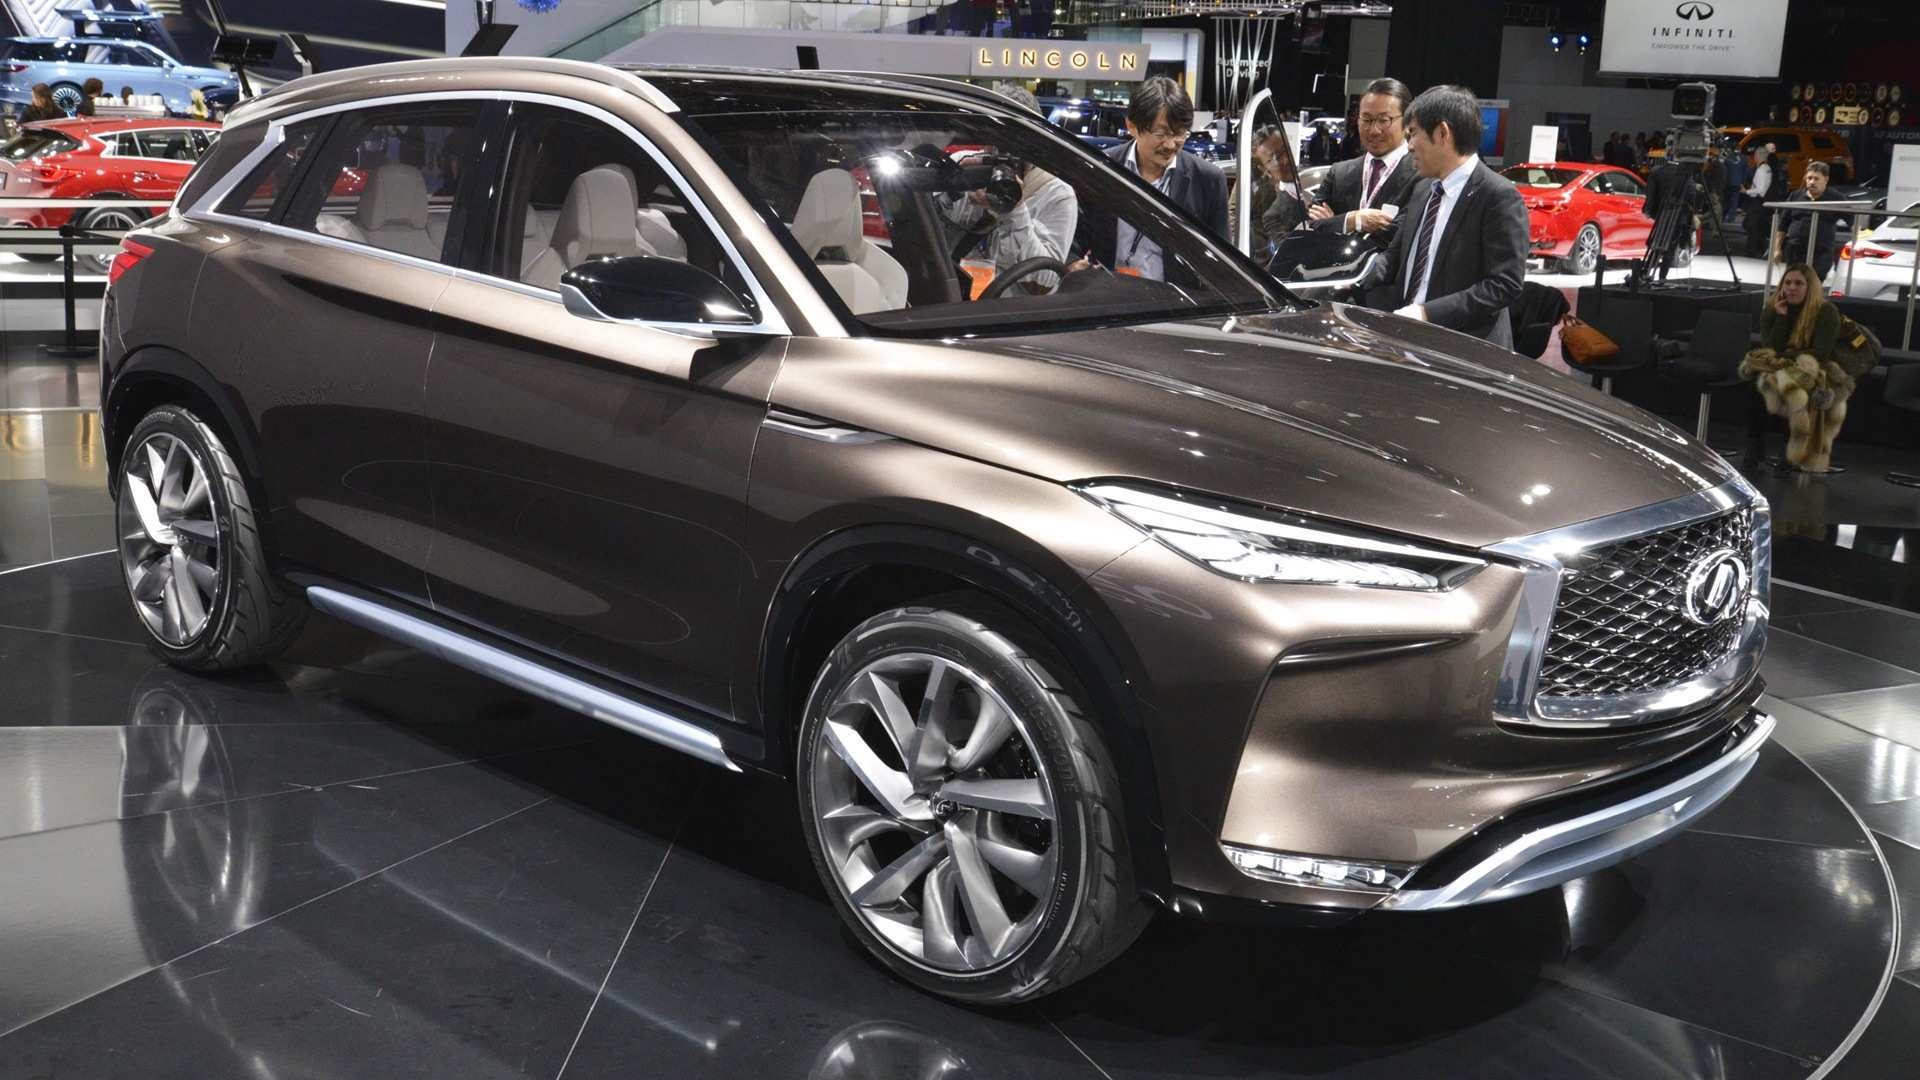 59 A 2020 Infiniti Qx60 Spy Photos Release